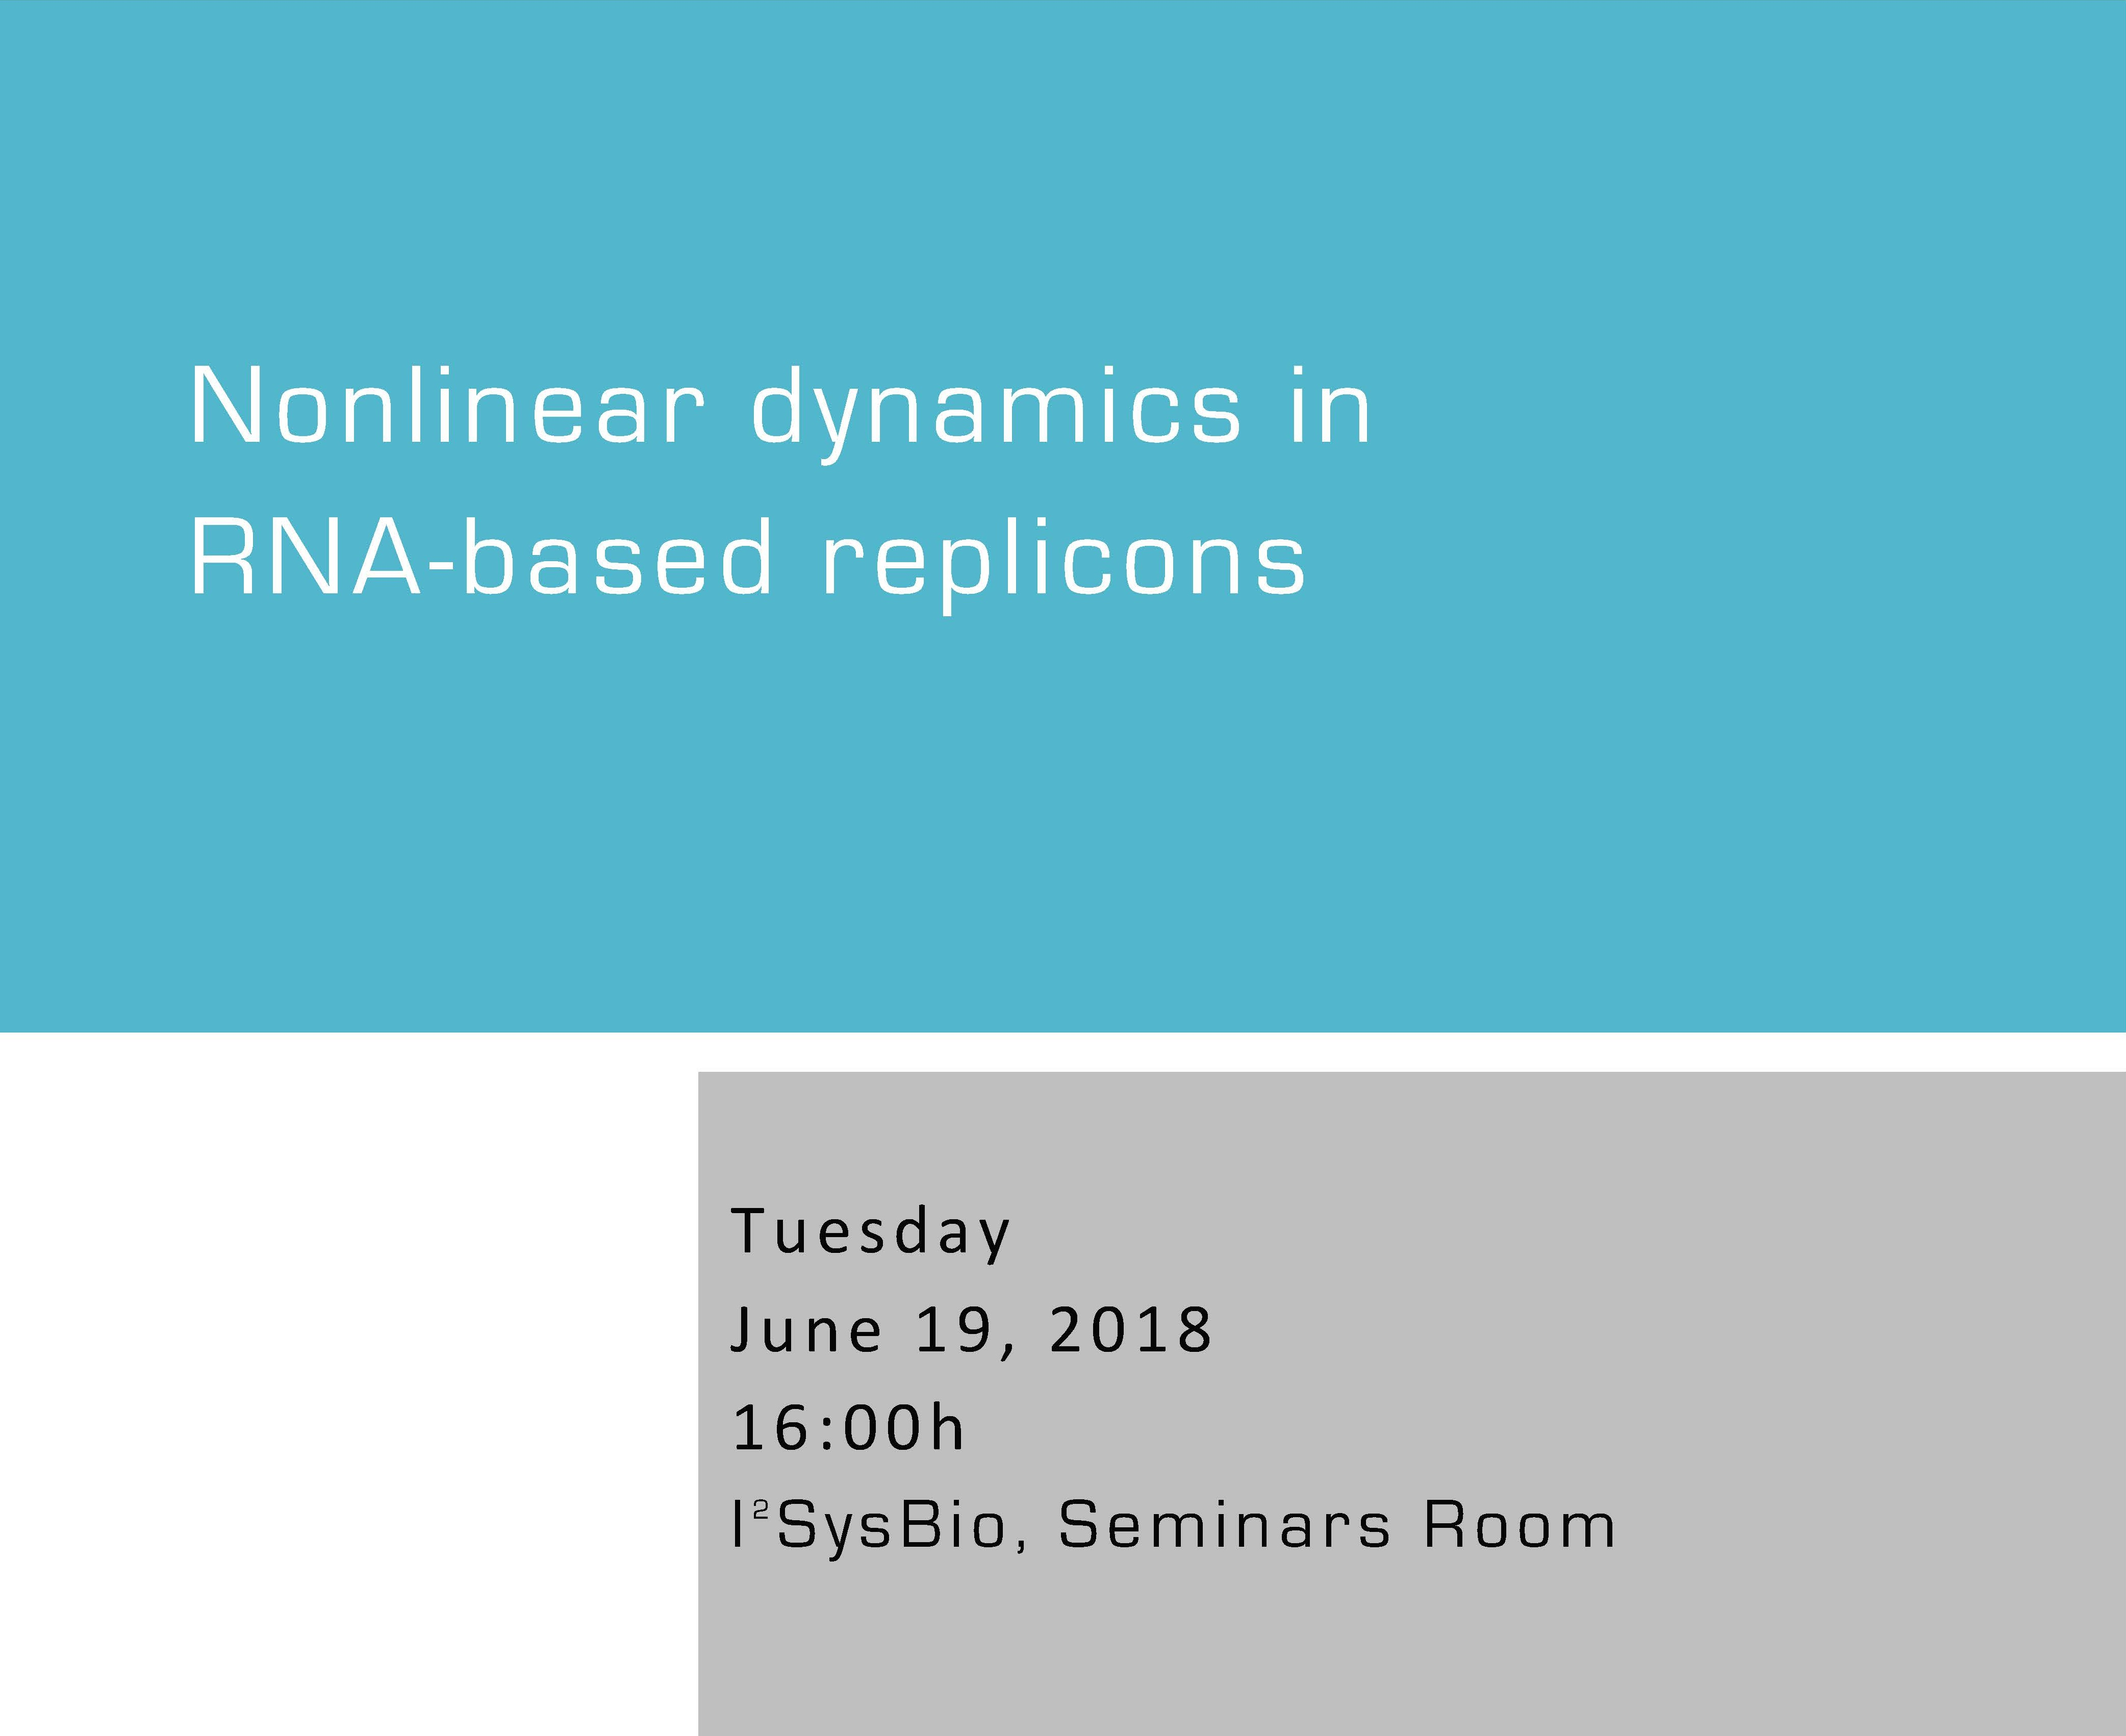 Nonlinear dynamics in RNA-based replicons